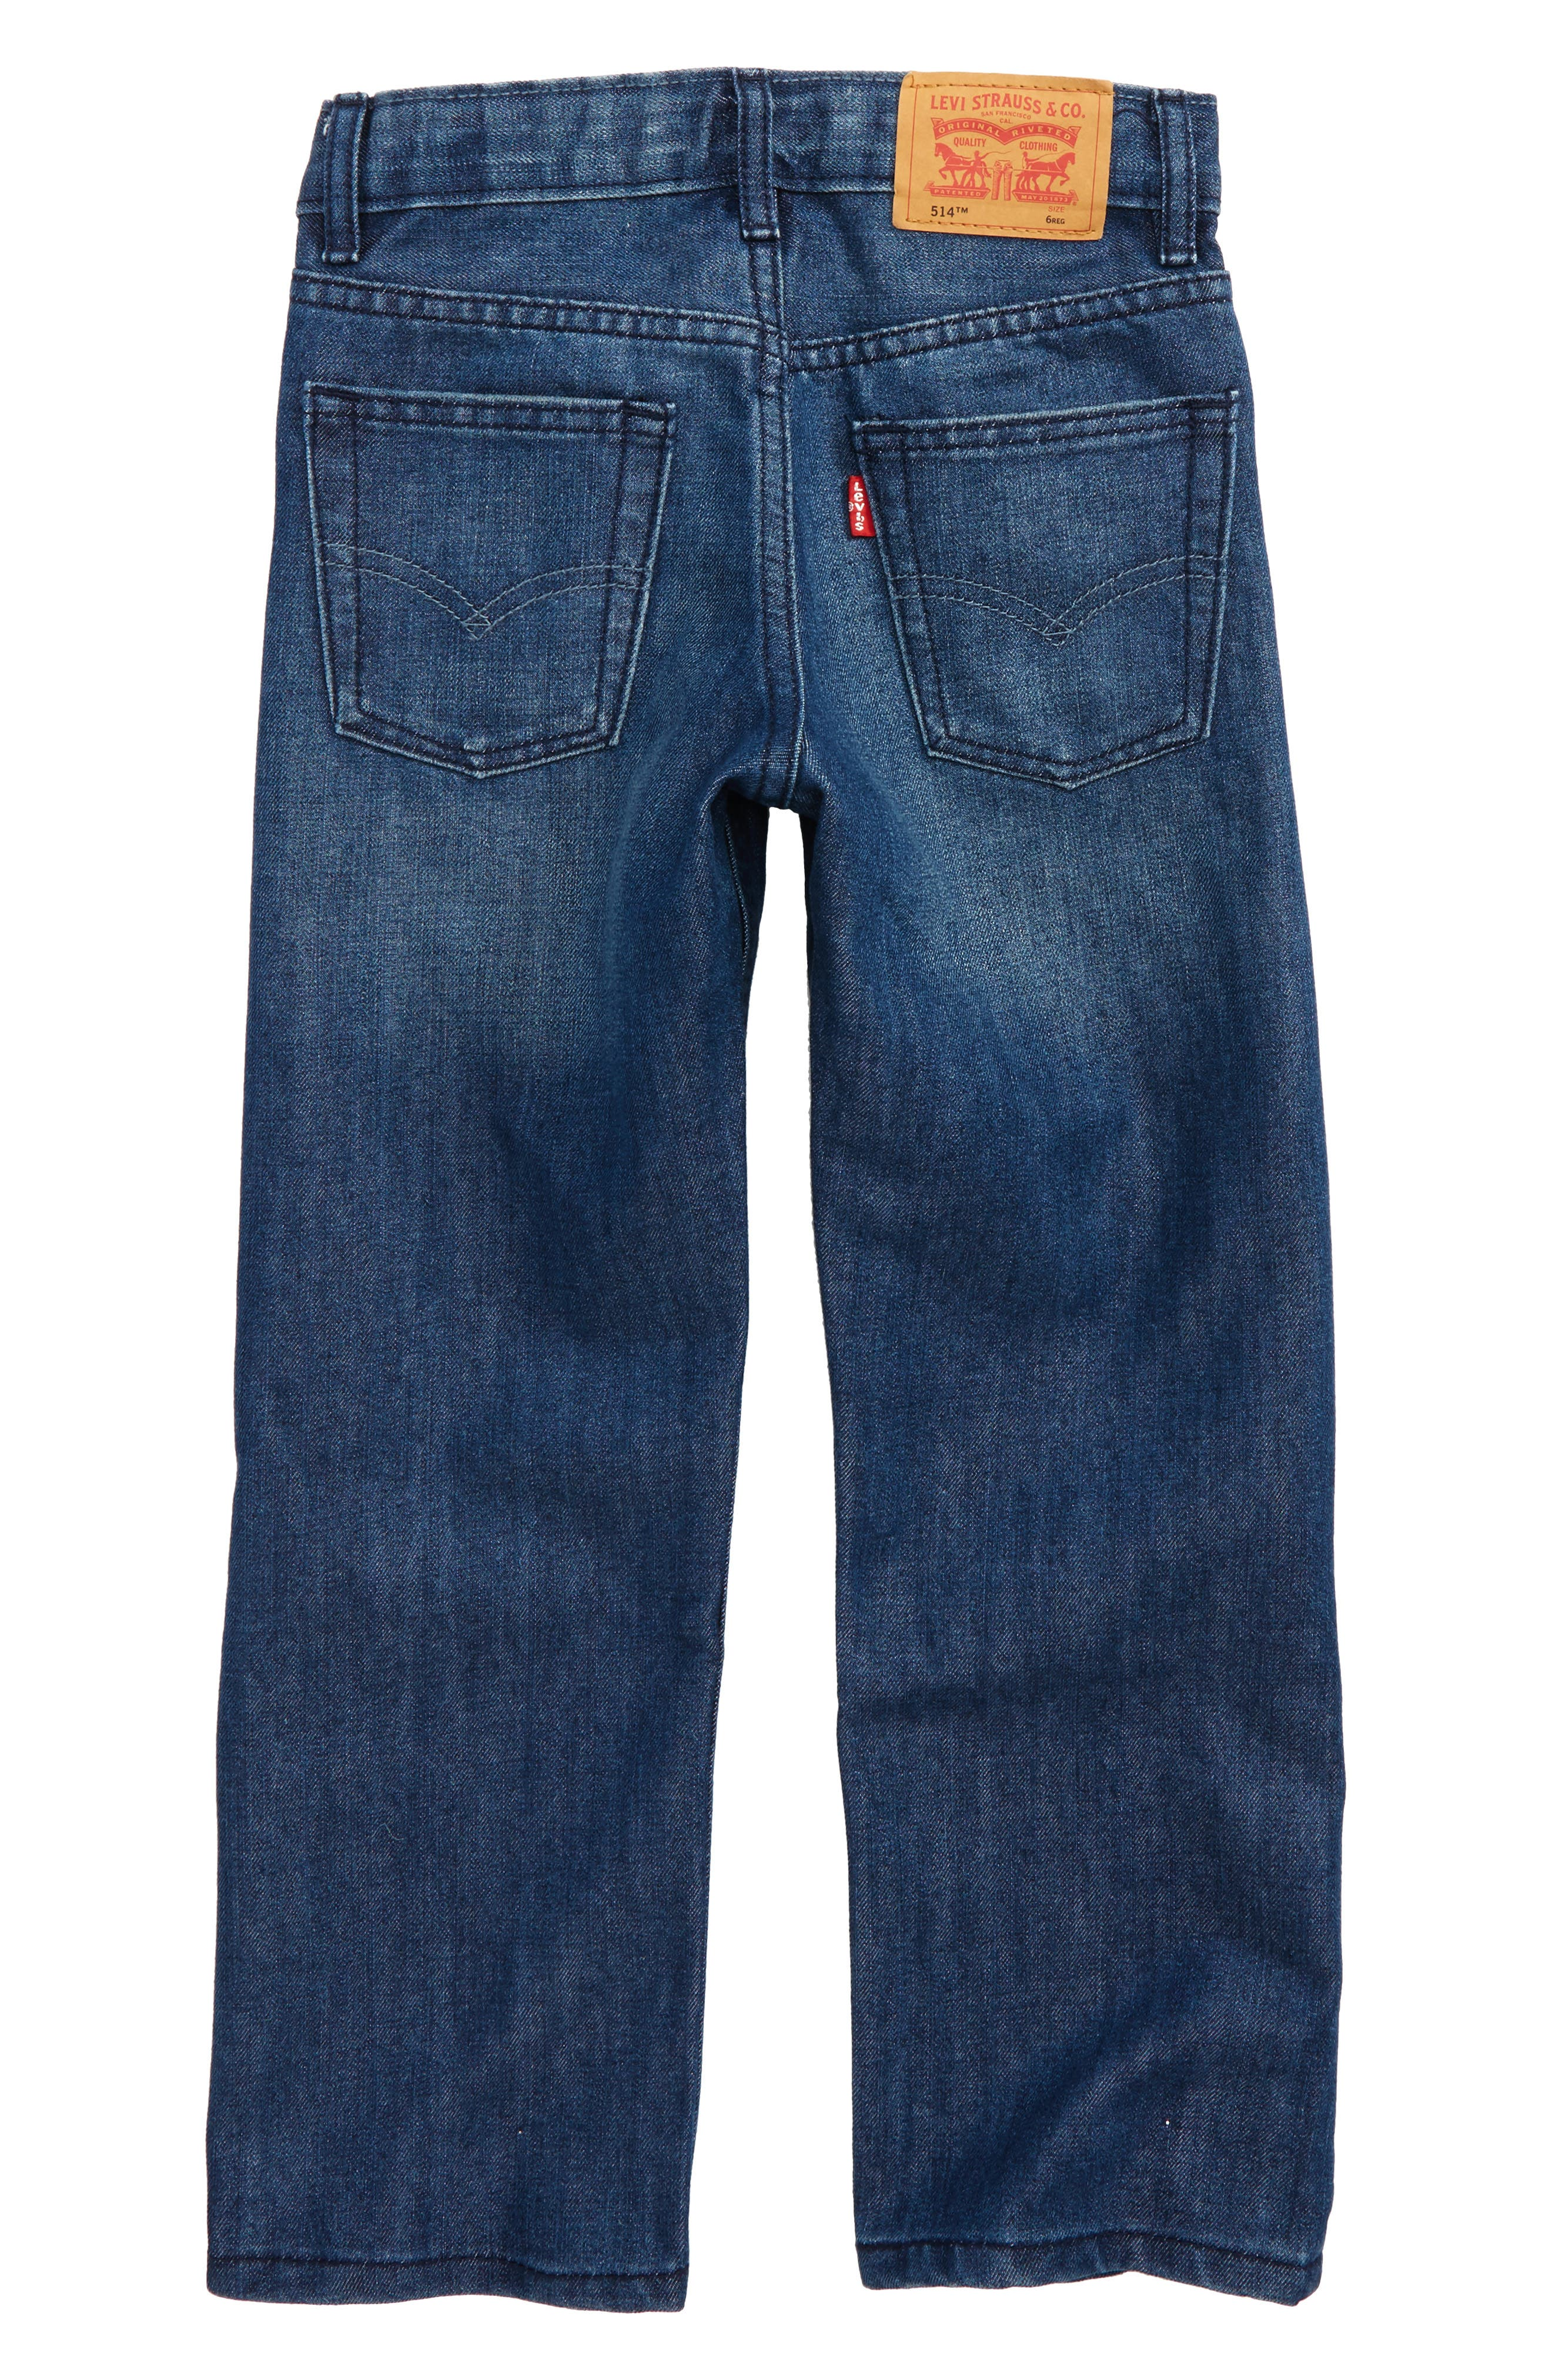 514<sup>™</sup> Straight Leg Jeans,                             Alternate thumbnail 2, color,                             Coastal Sd